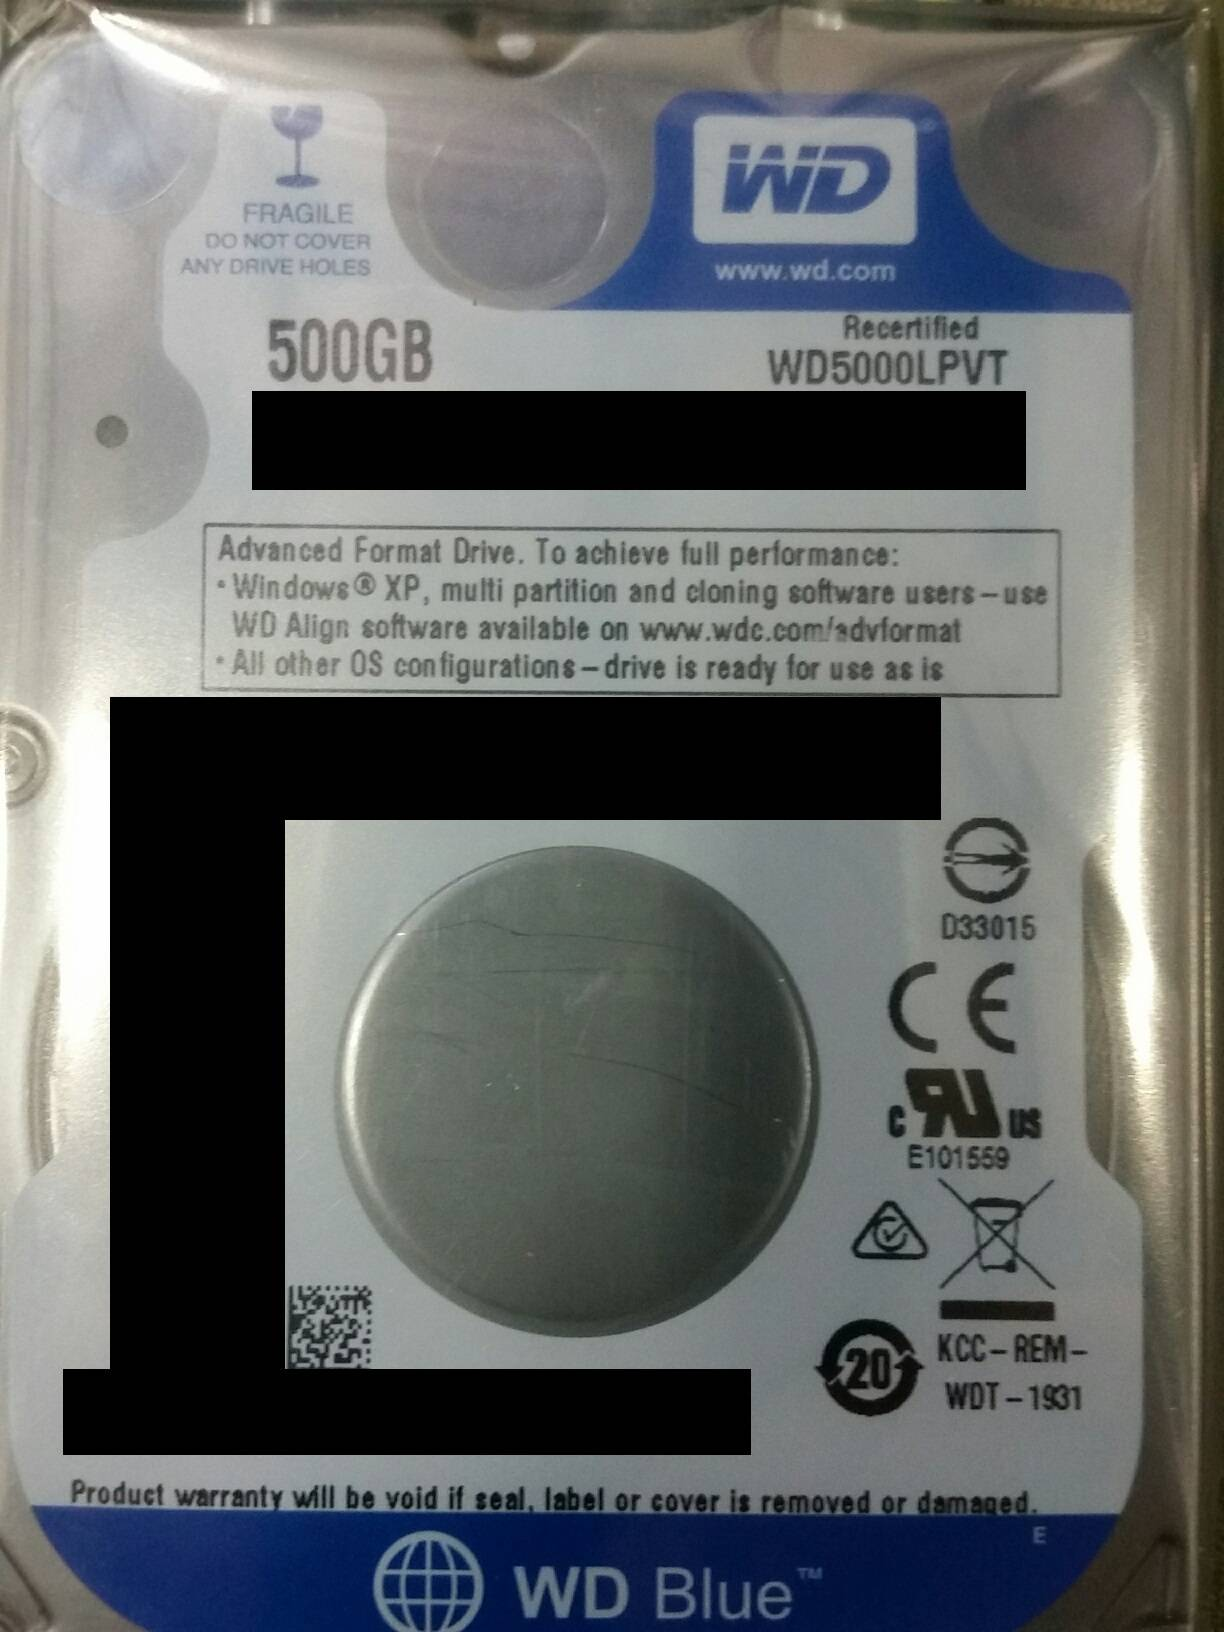 WD5000LPVT 500GB HD FR